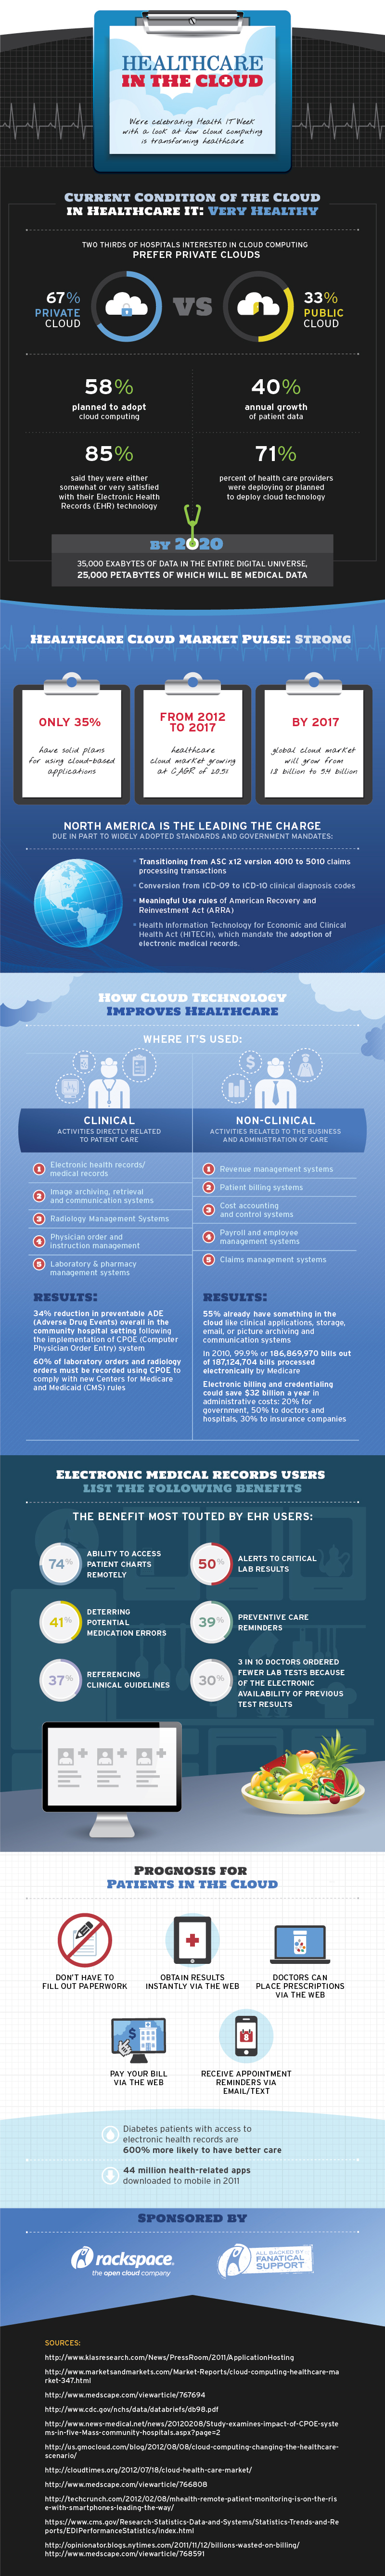 Rackspace® — [Infographic] Healthcare in the Cloud